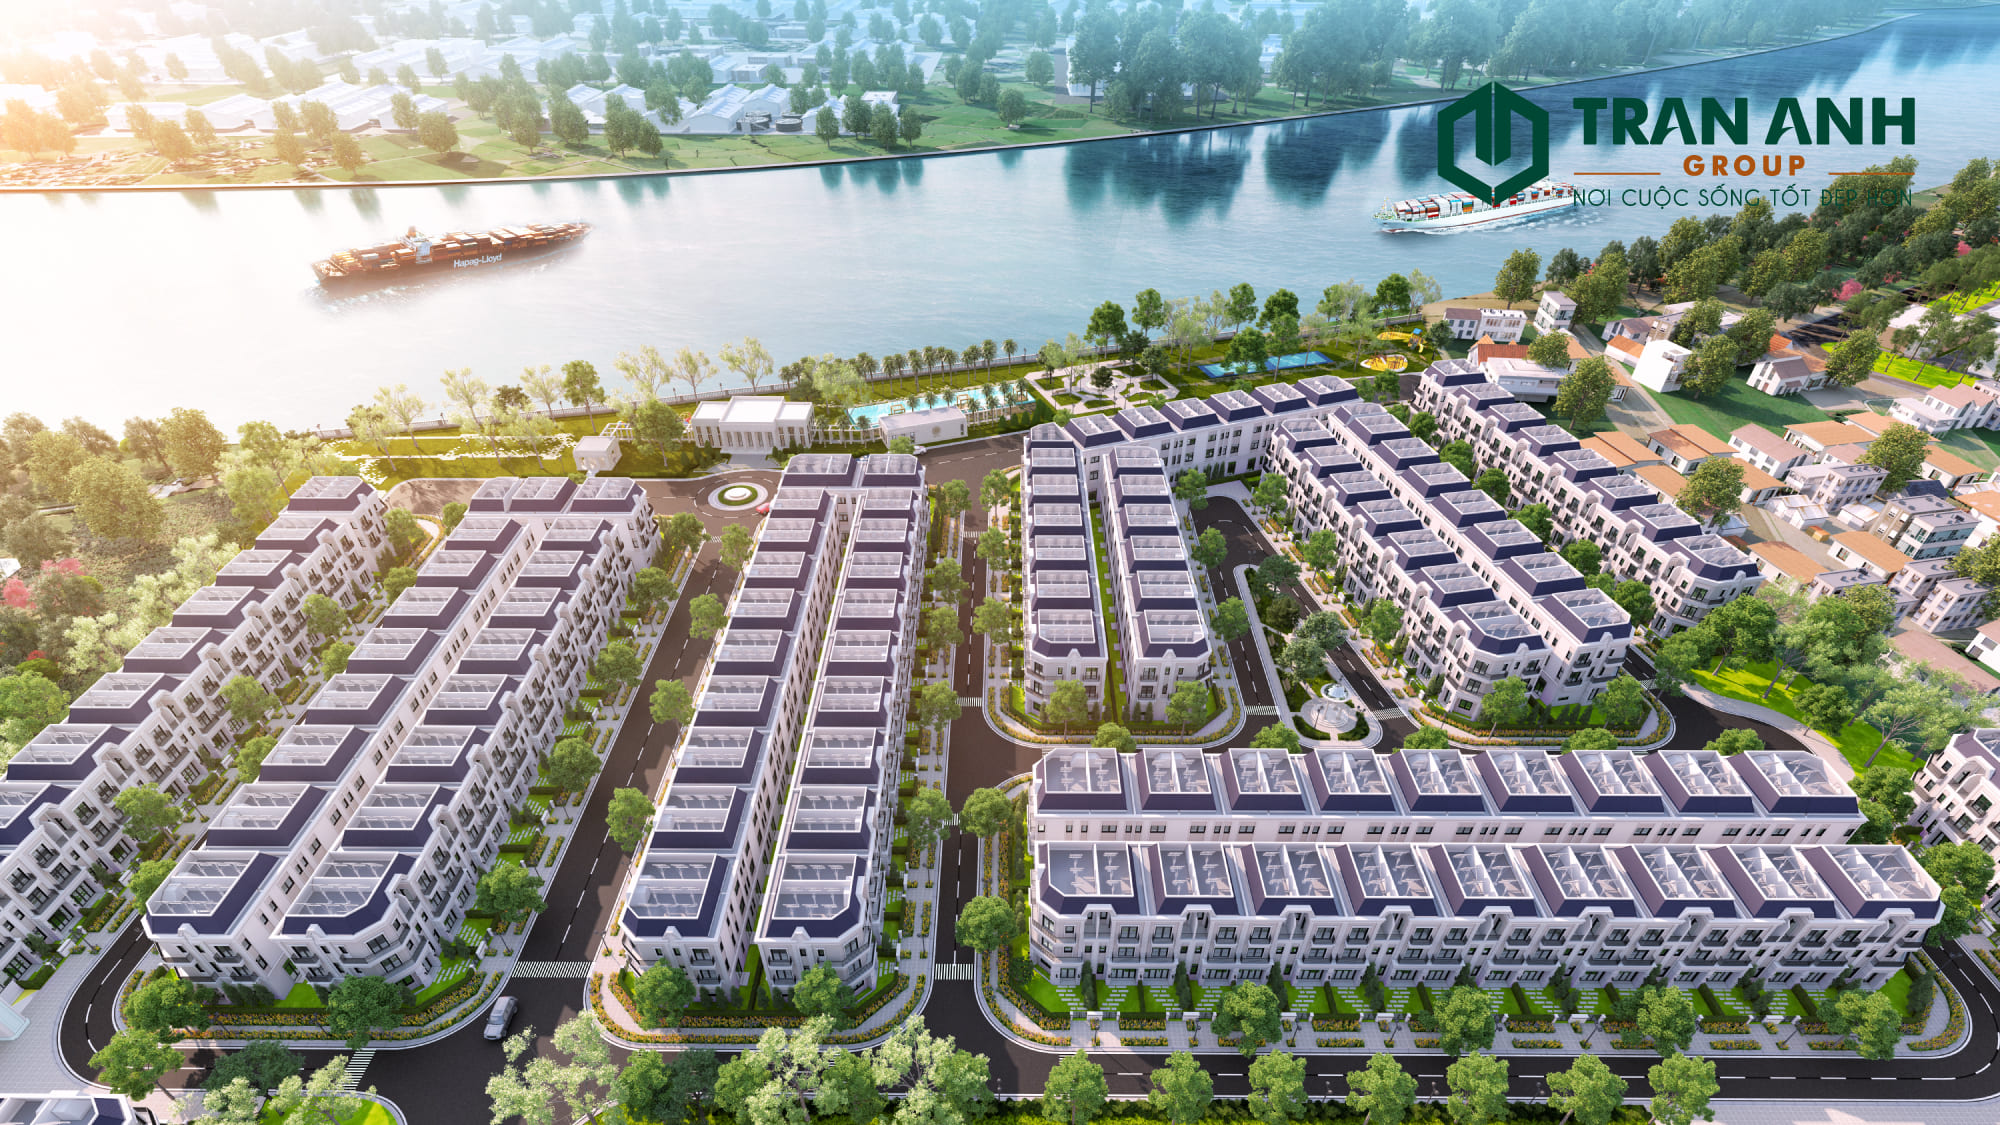 tong-the-solar-city-view-song-18-05-2019-19-12-52.jpg